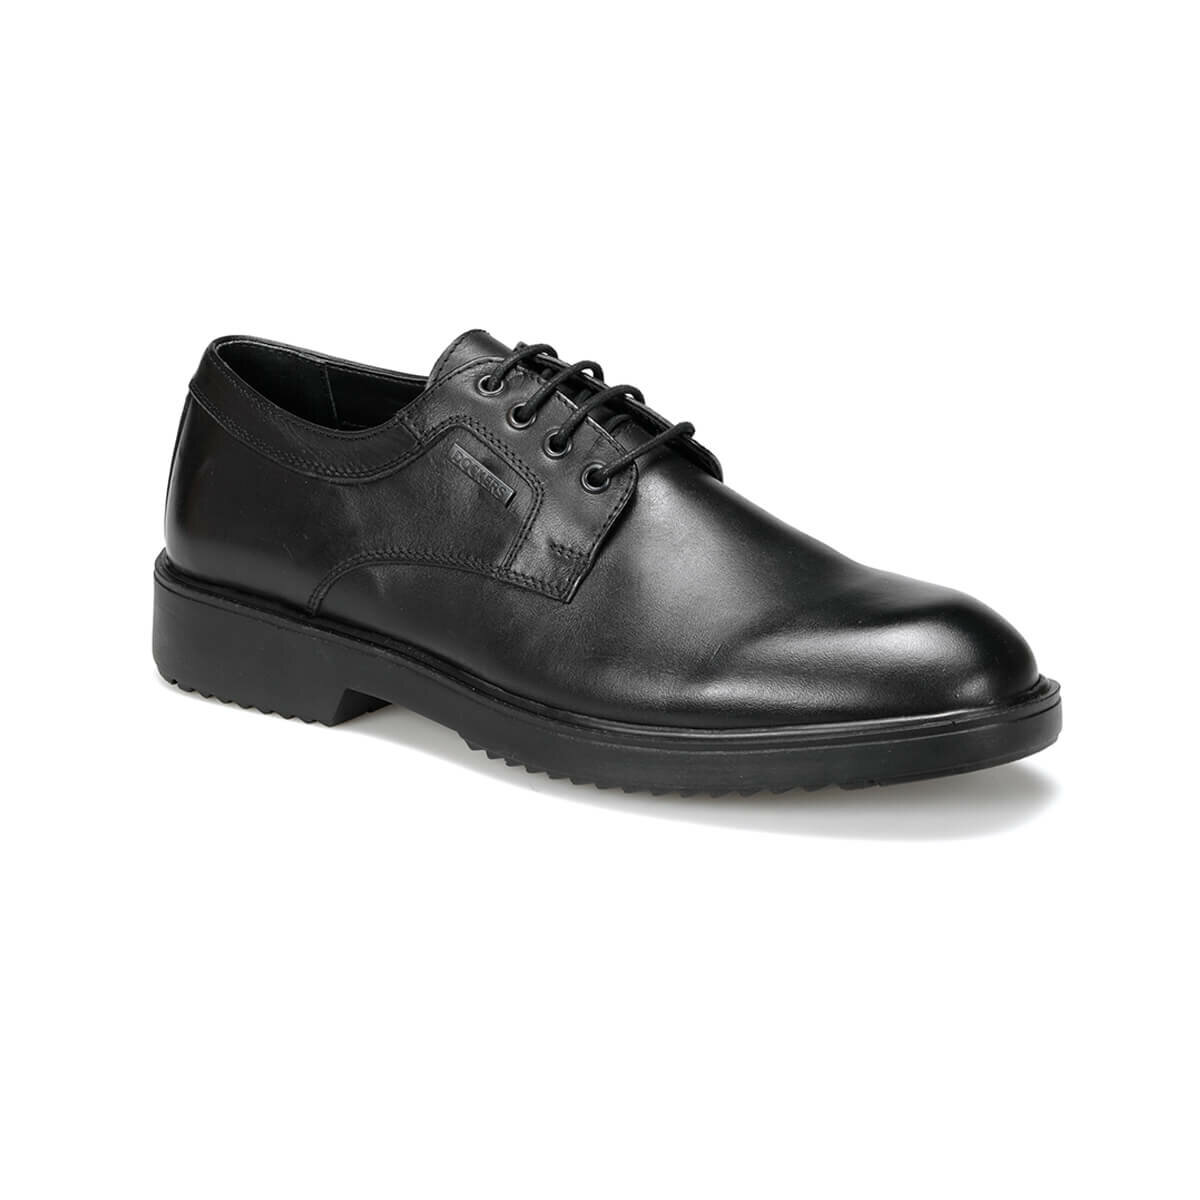 FLO 225021 9PR Black Men 'S Classic Shoes By Dockers The Gerle